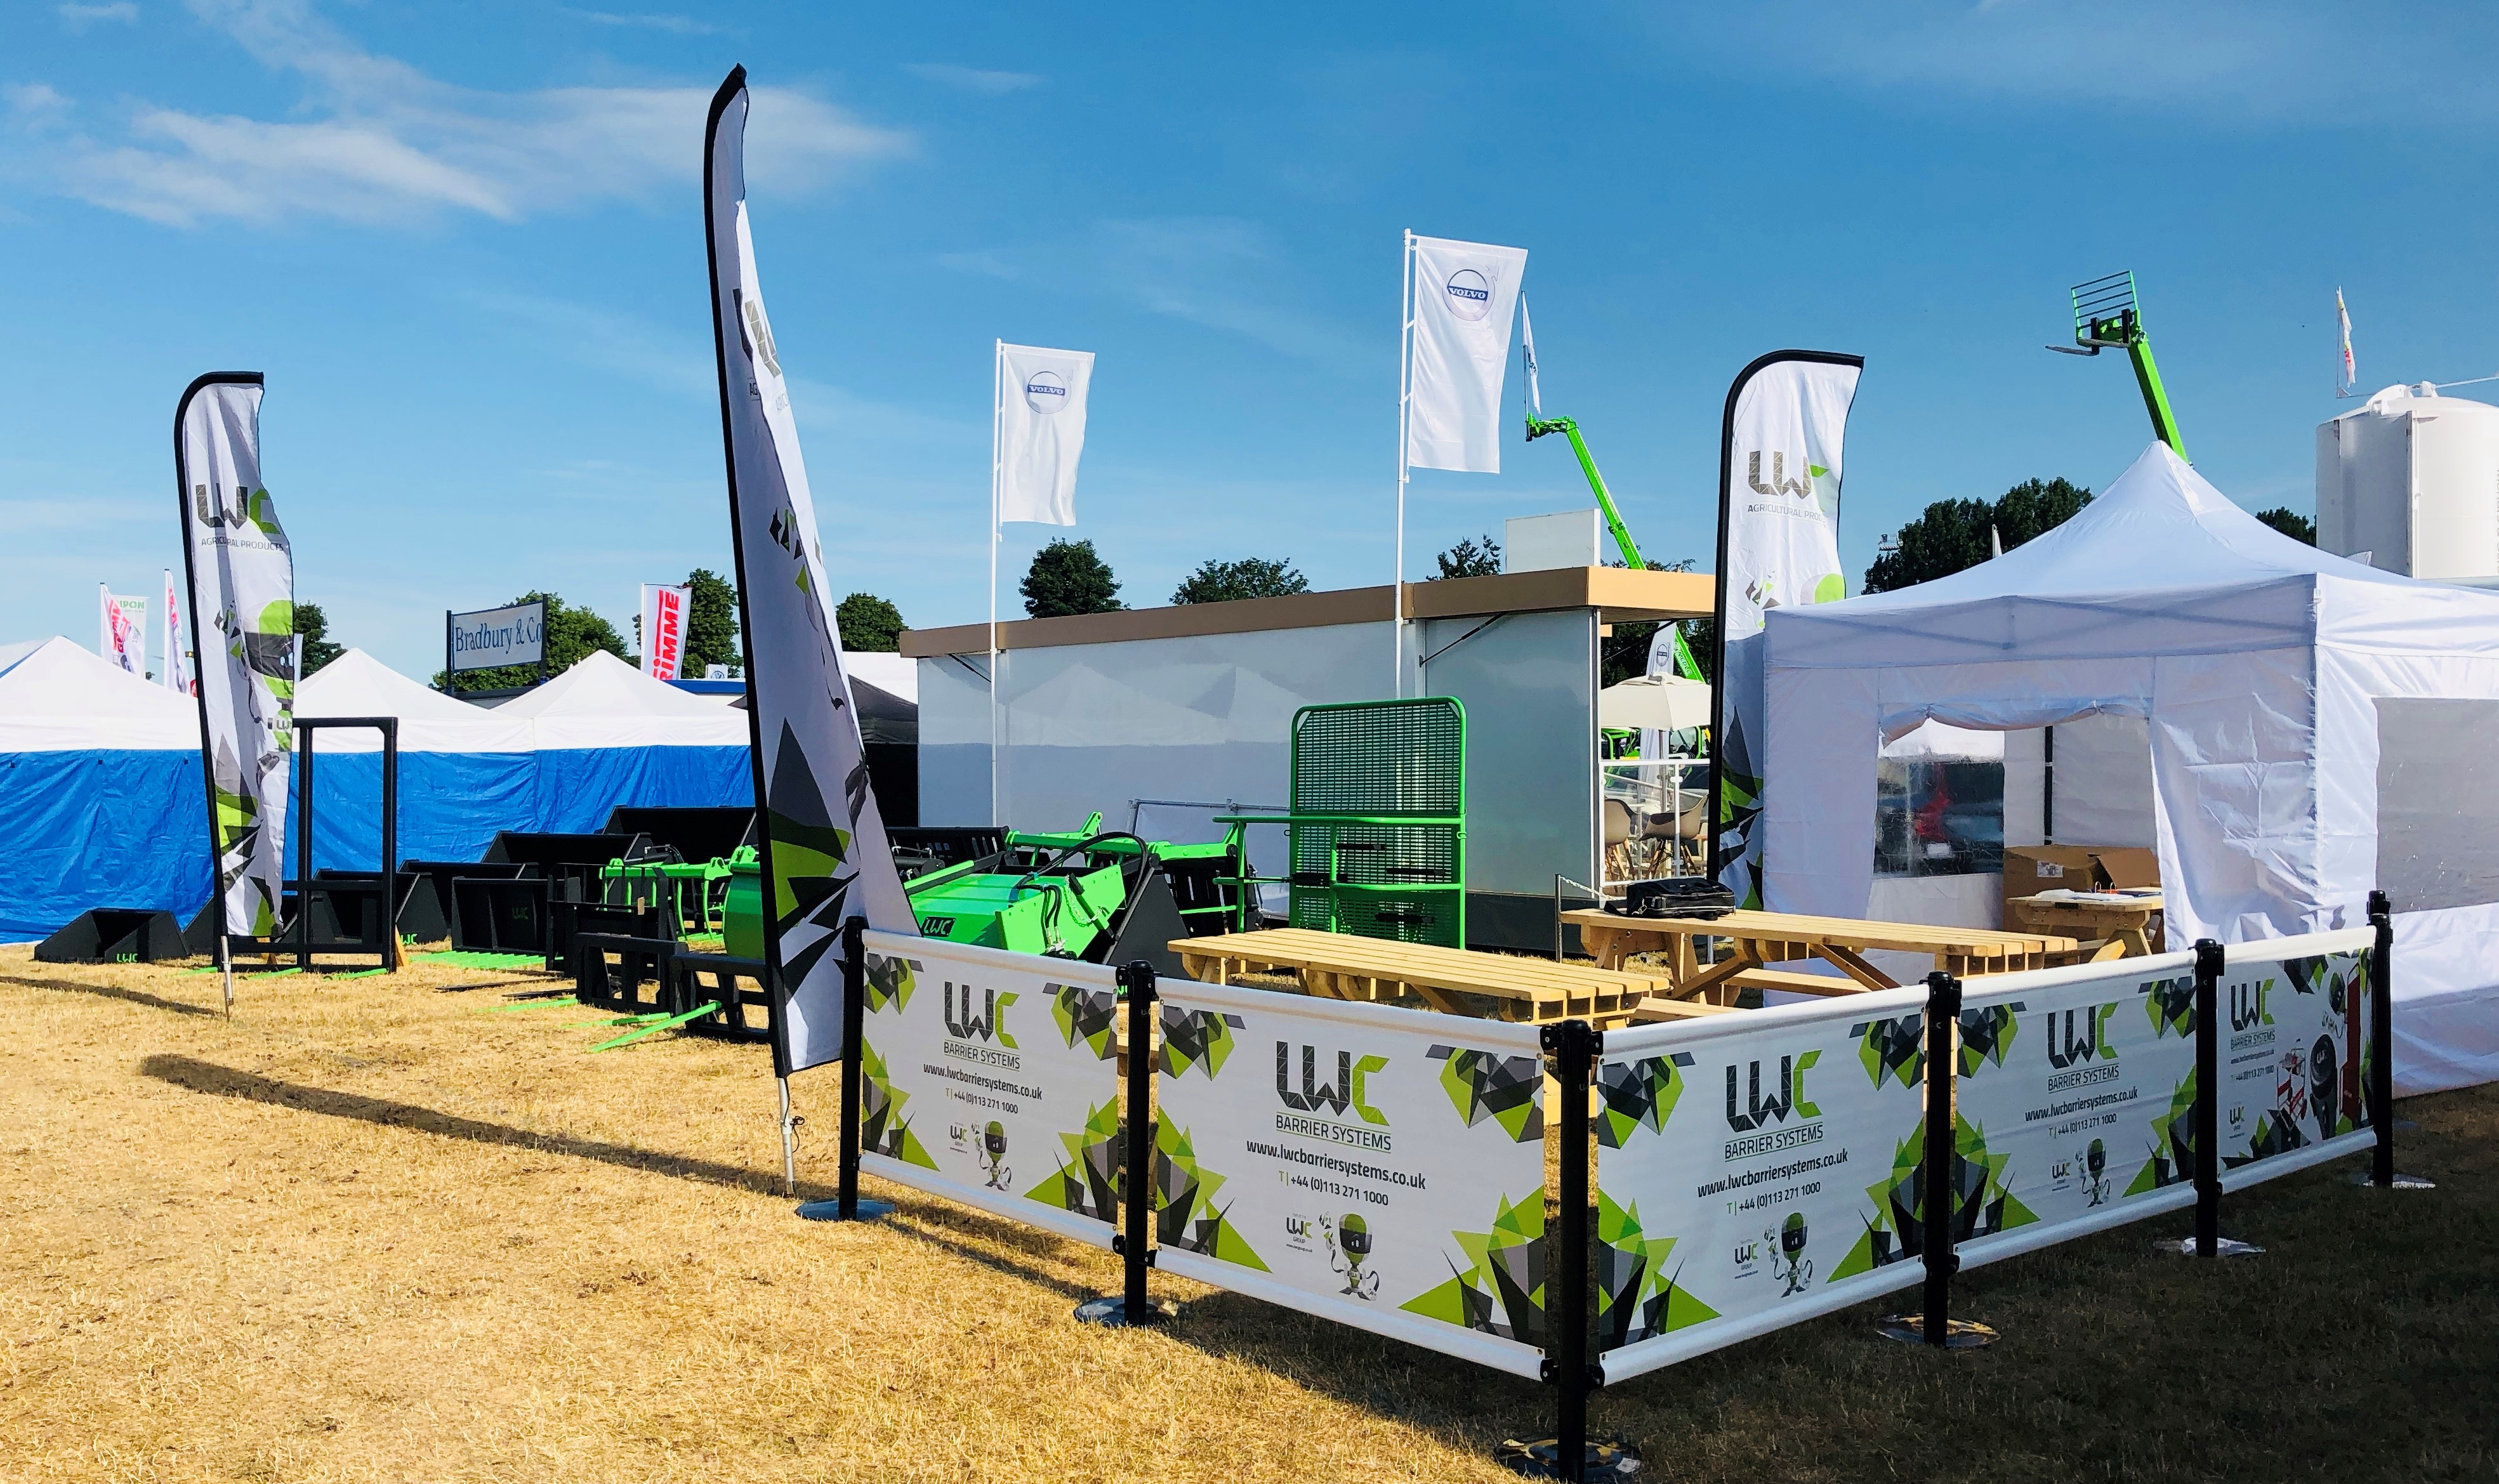 LWC to exhibit at Driffield Show 2021